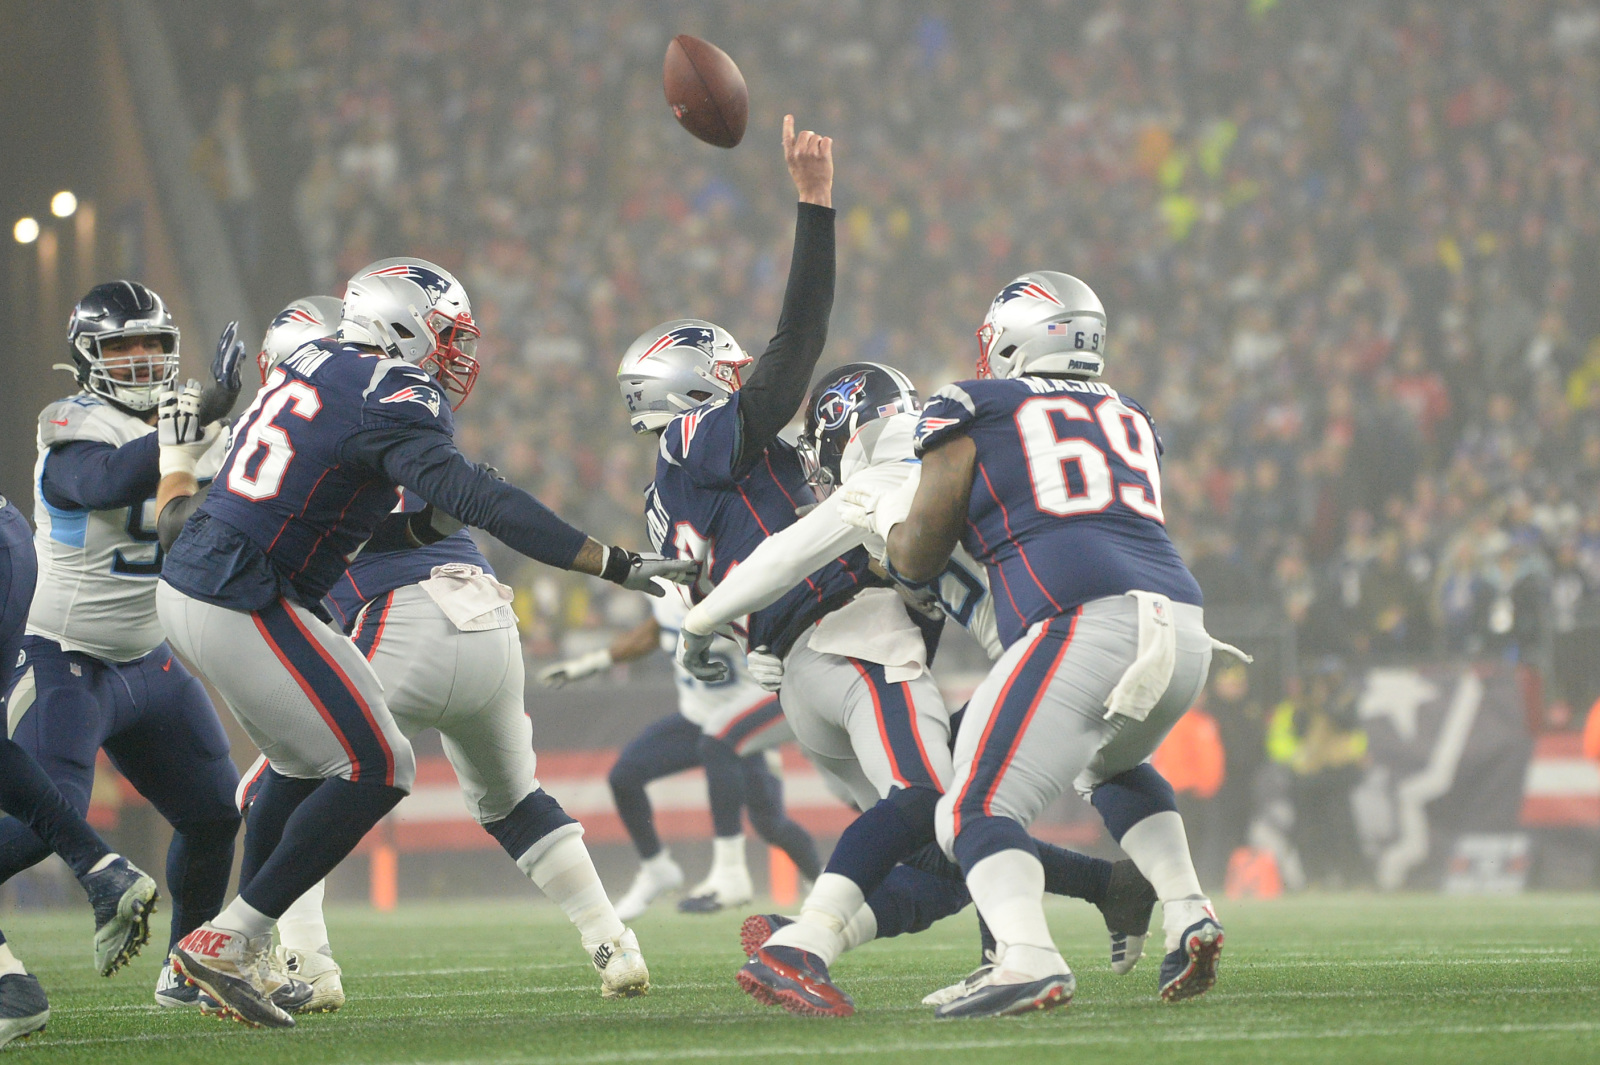 The AFC East will be up for grabs if Tom Brady leaves N.E.